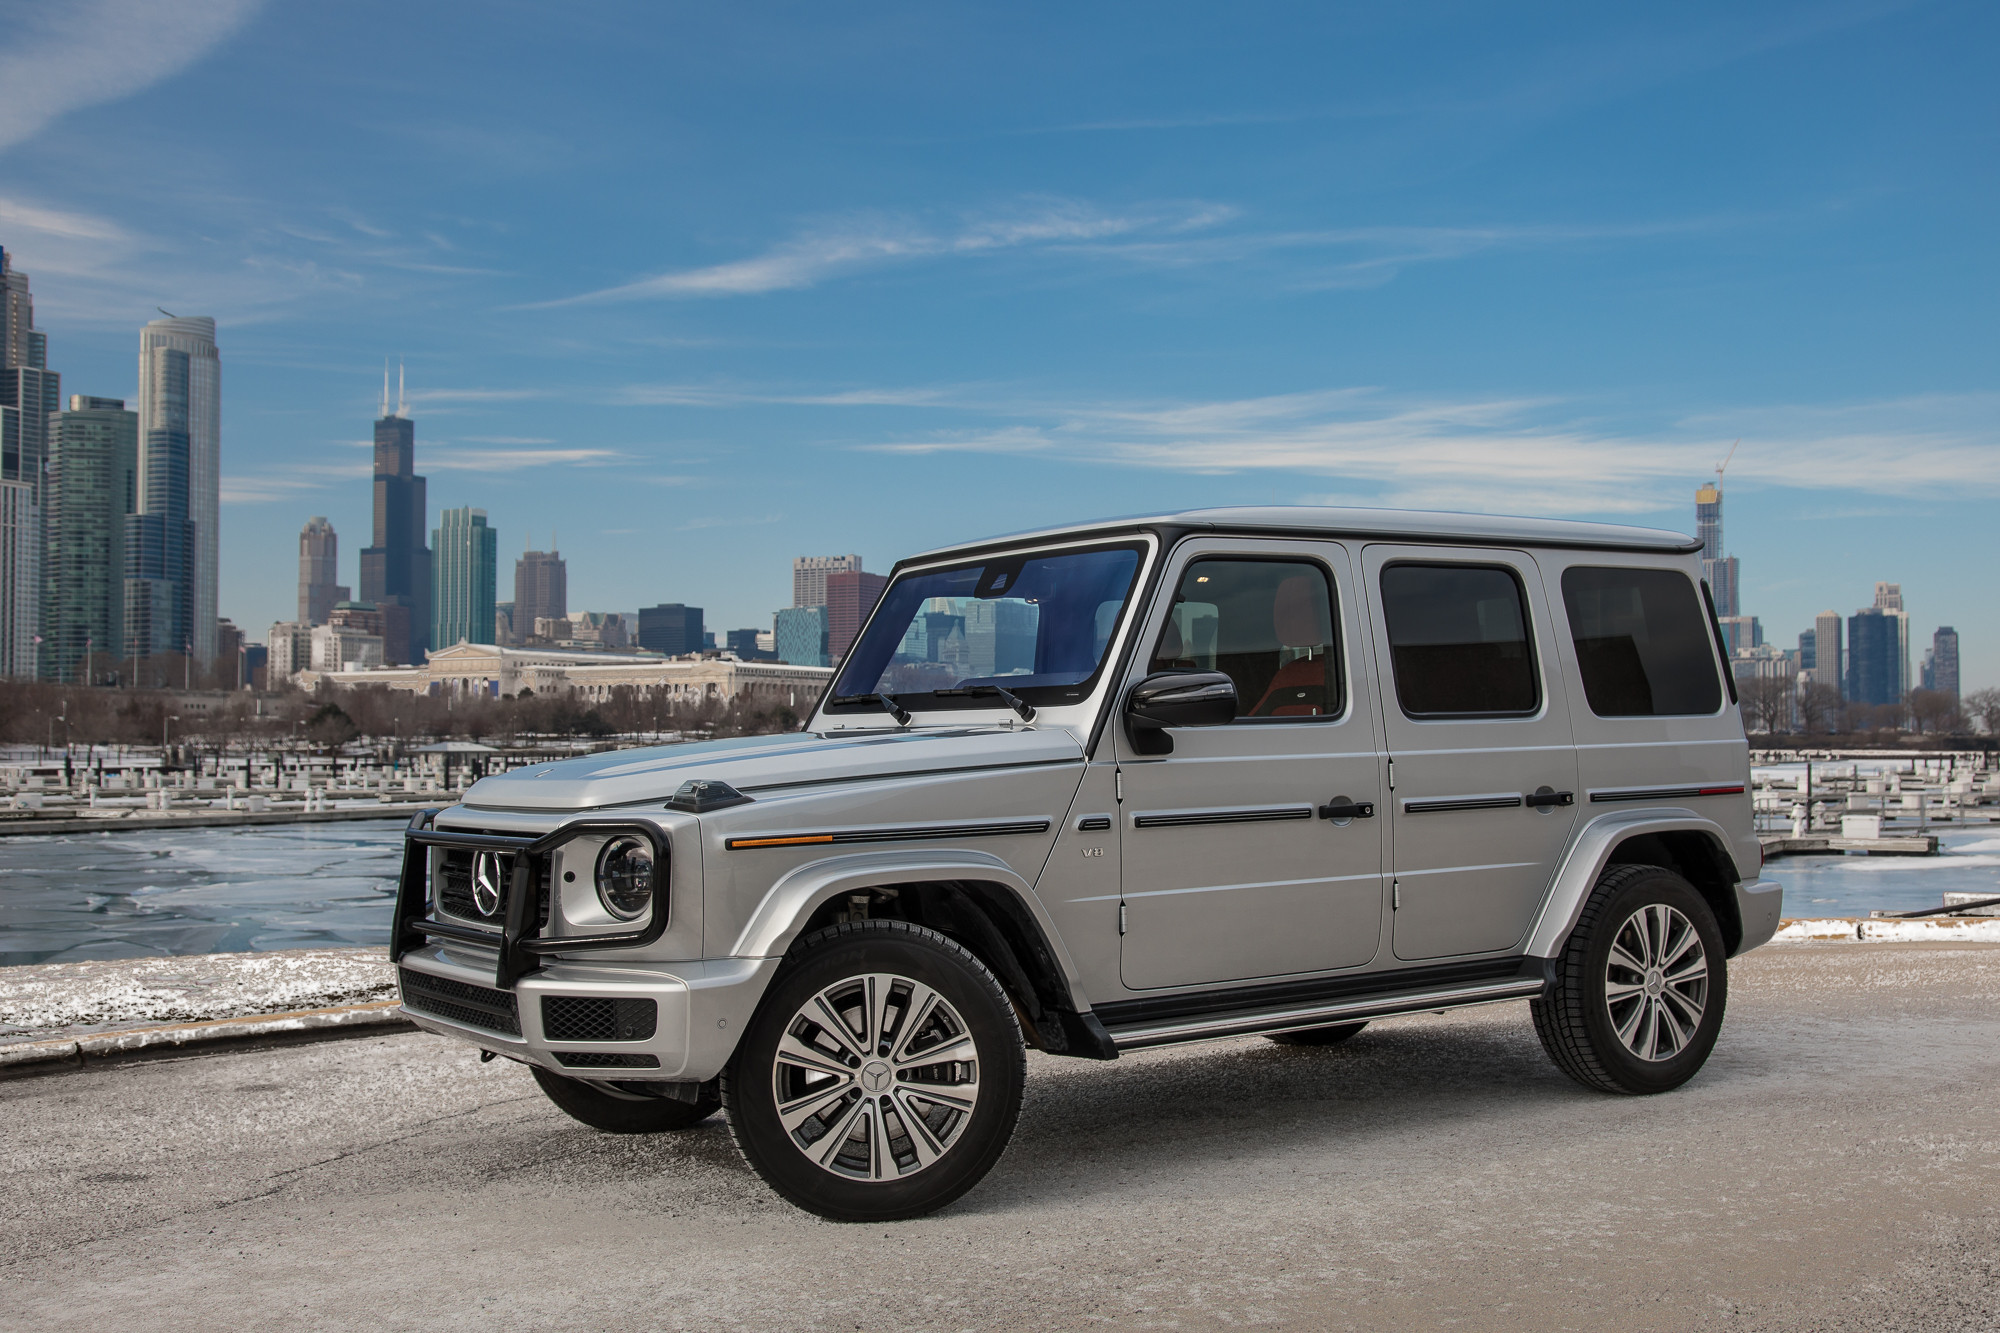 2020 Mercedes-Benz G-Class: Design, Specs, Price >> 3 Things We Like And 3 Not So Much About The 2019